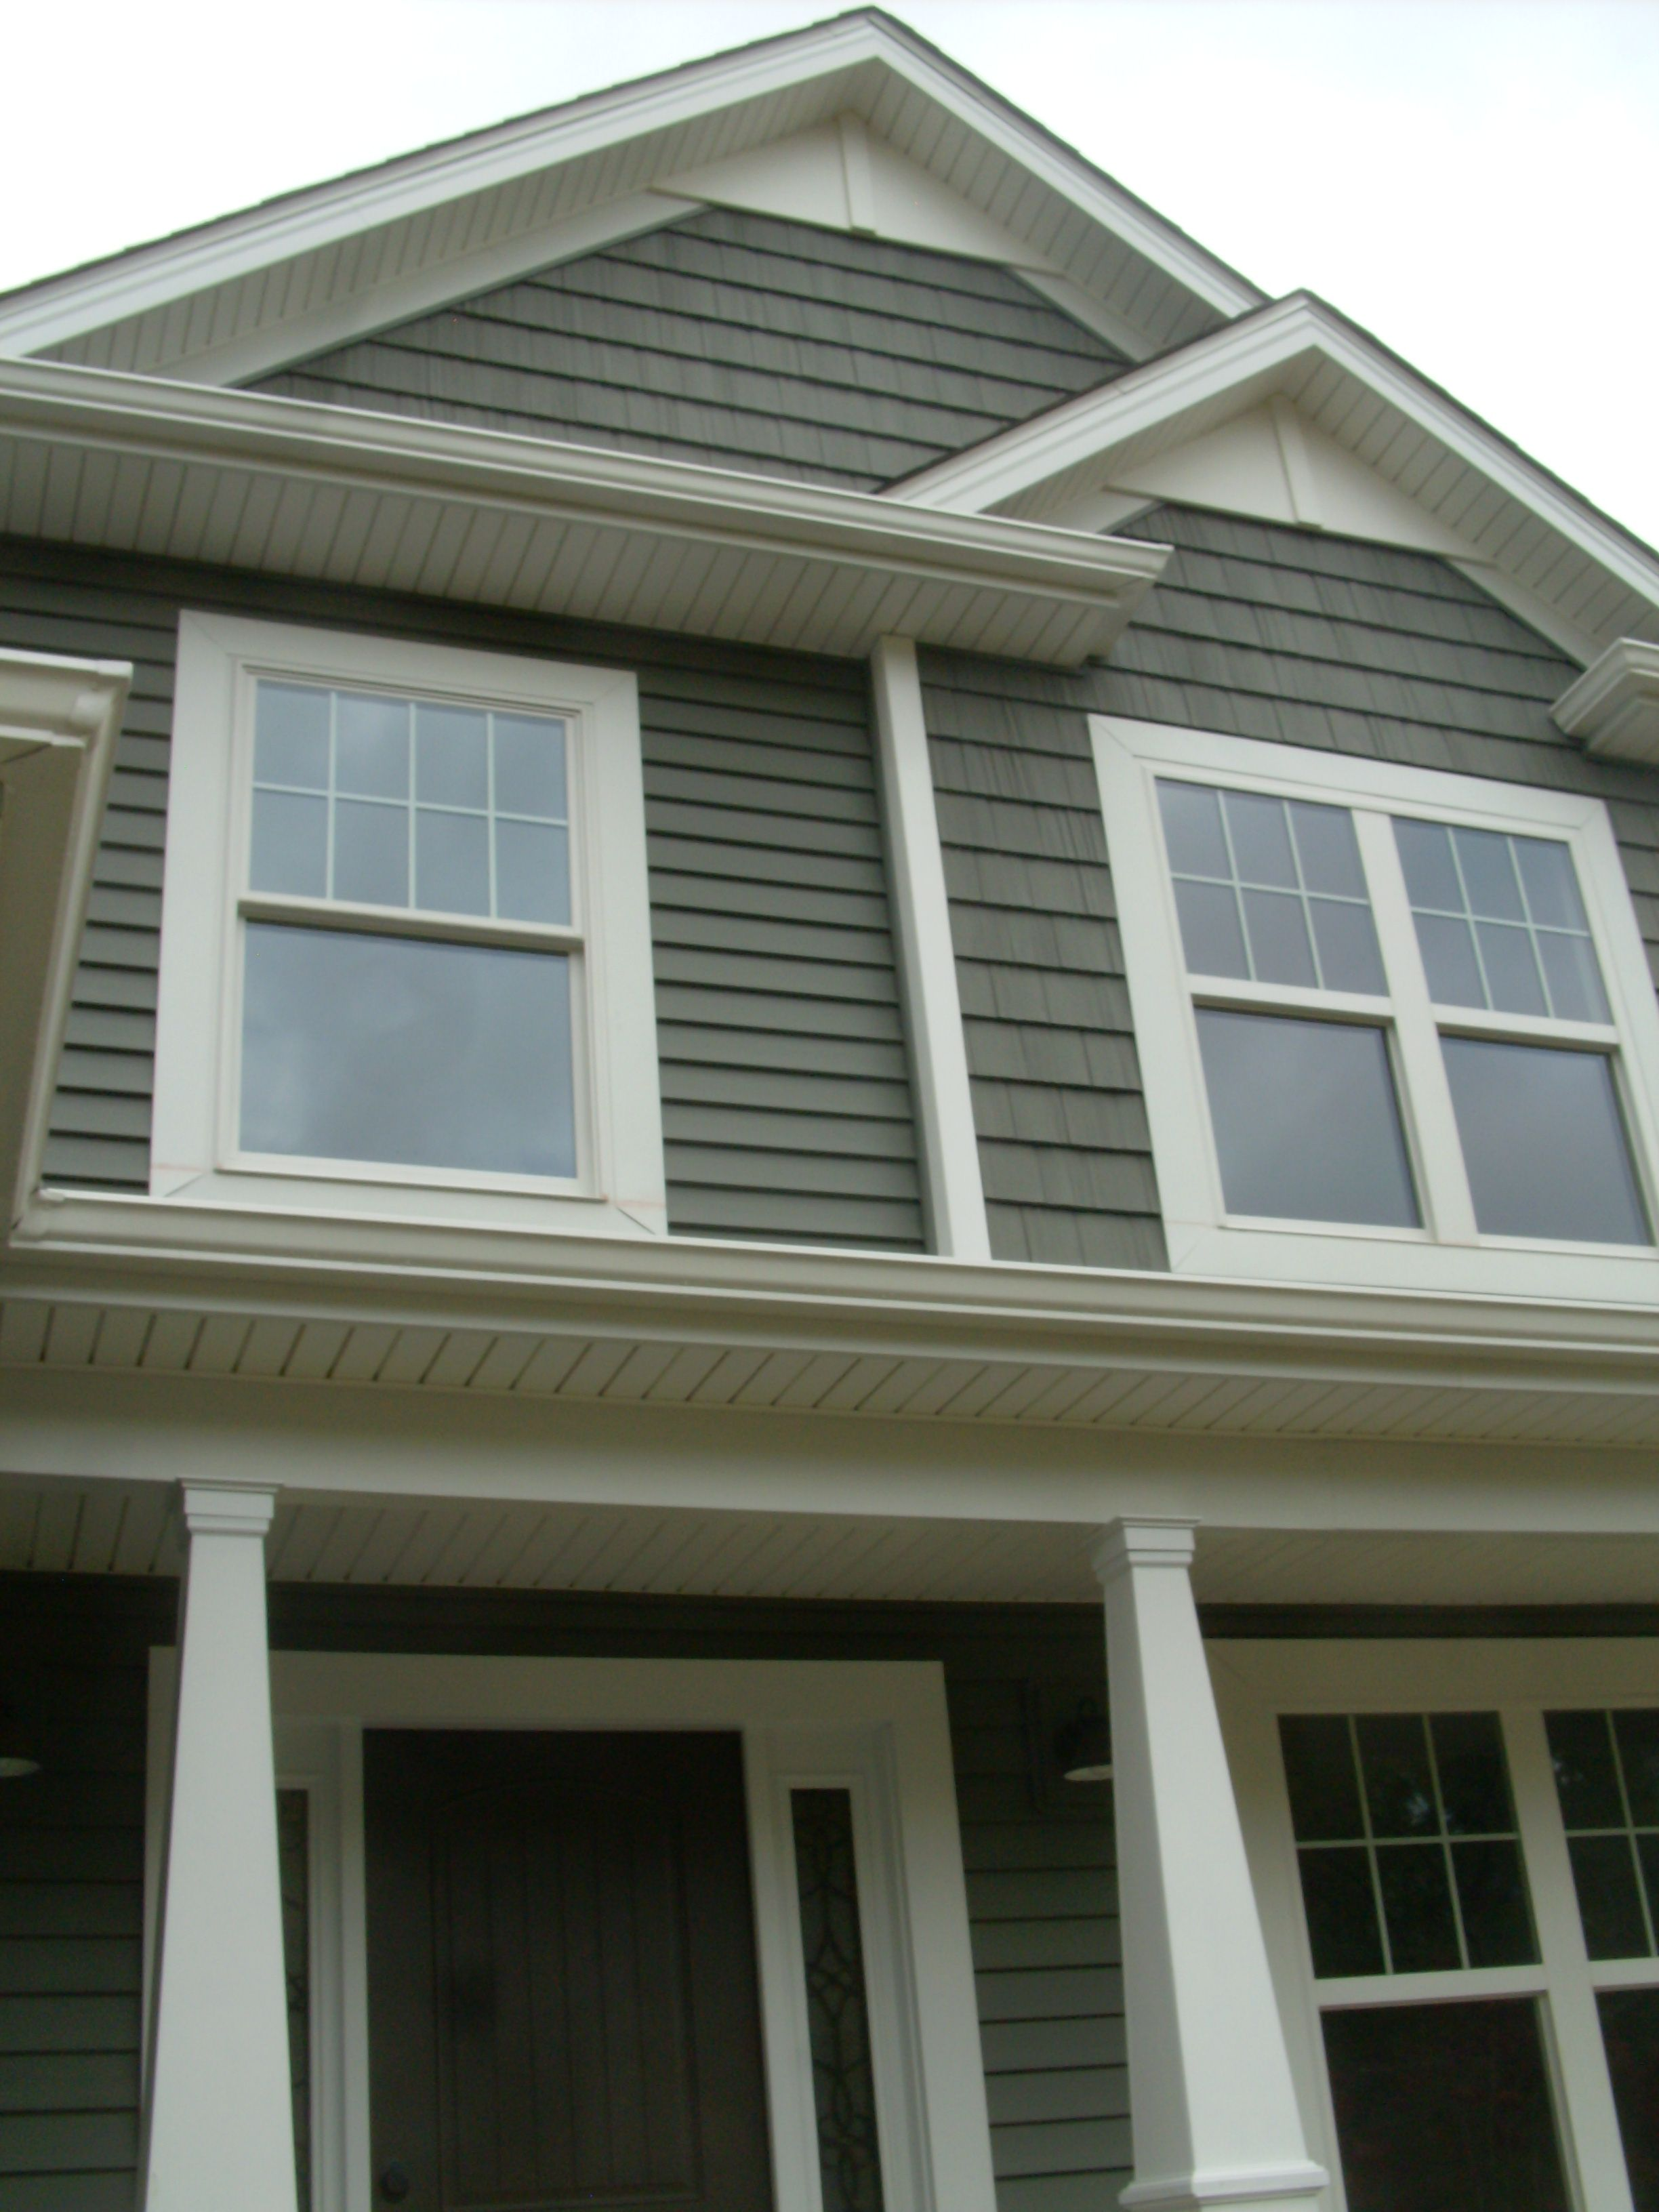 Alside Deep Moss Siding And Shakes White Pvc Accents In The Peaks Ref Keith Homes 304